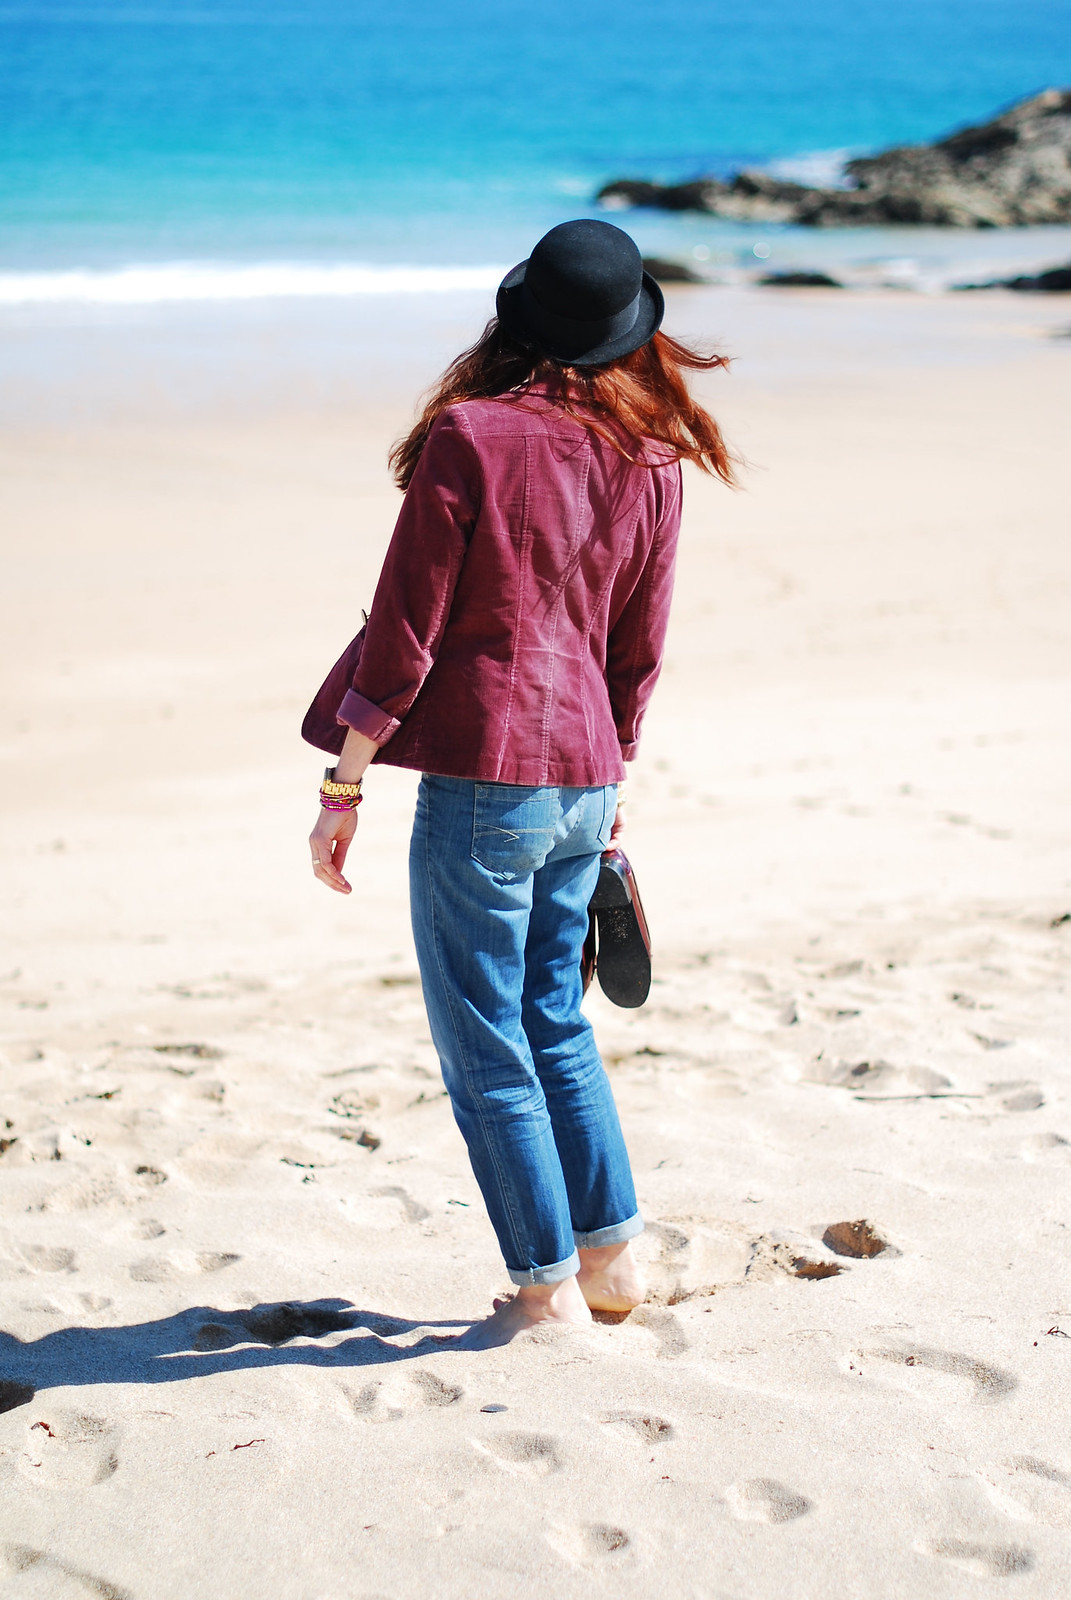 Bowler hat, blazer and boyfriend jeans on the beach | Not Dressed As Lamb